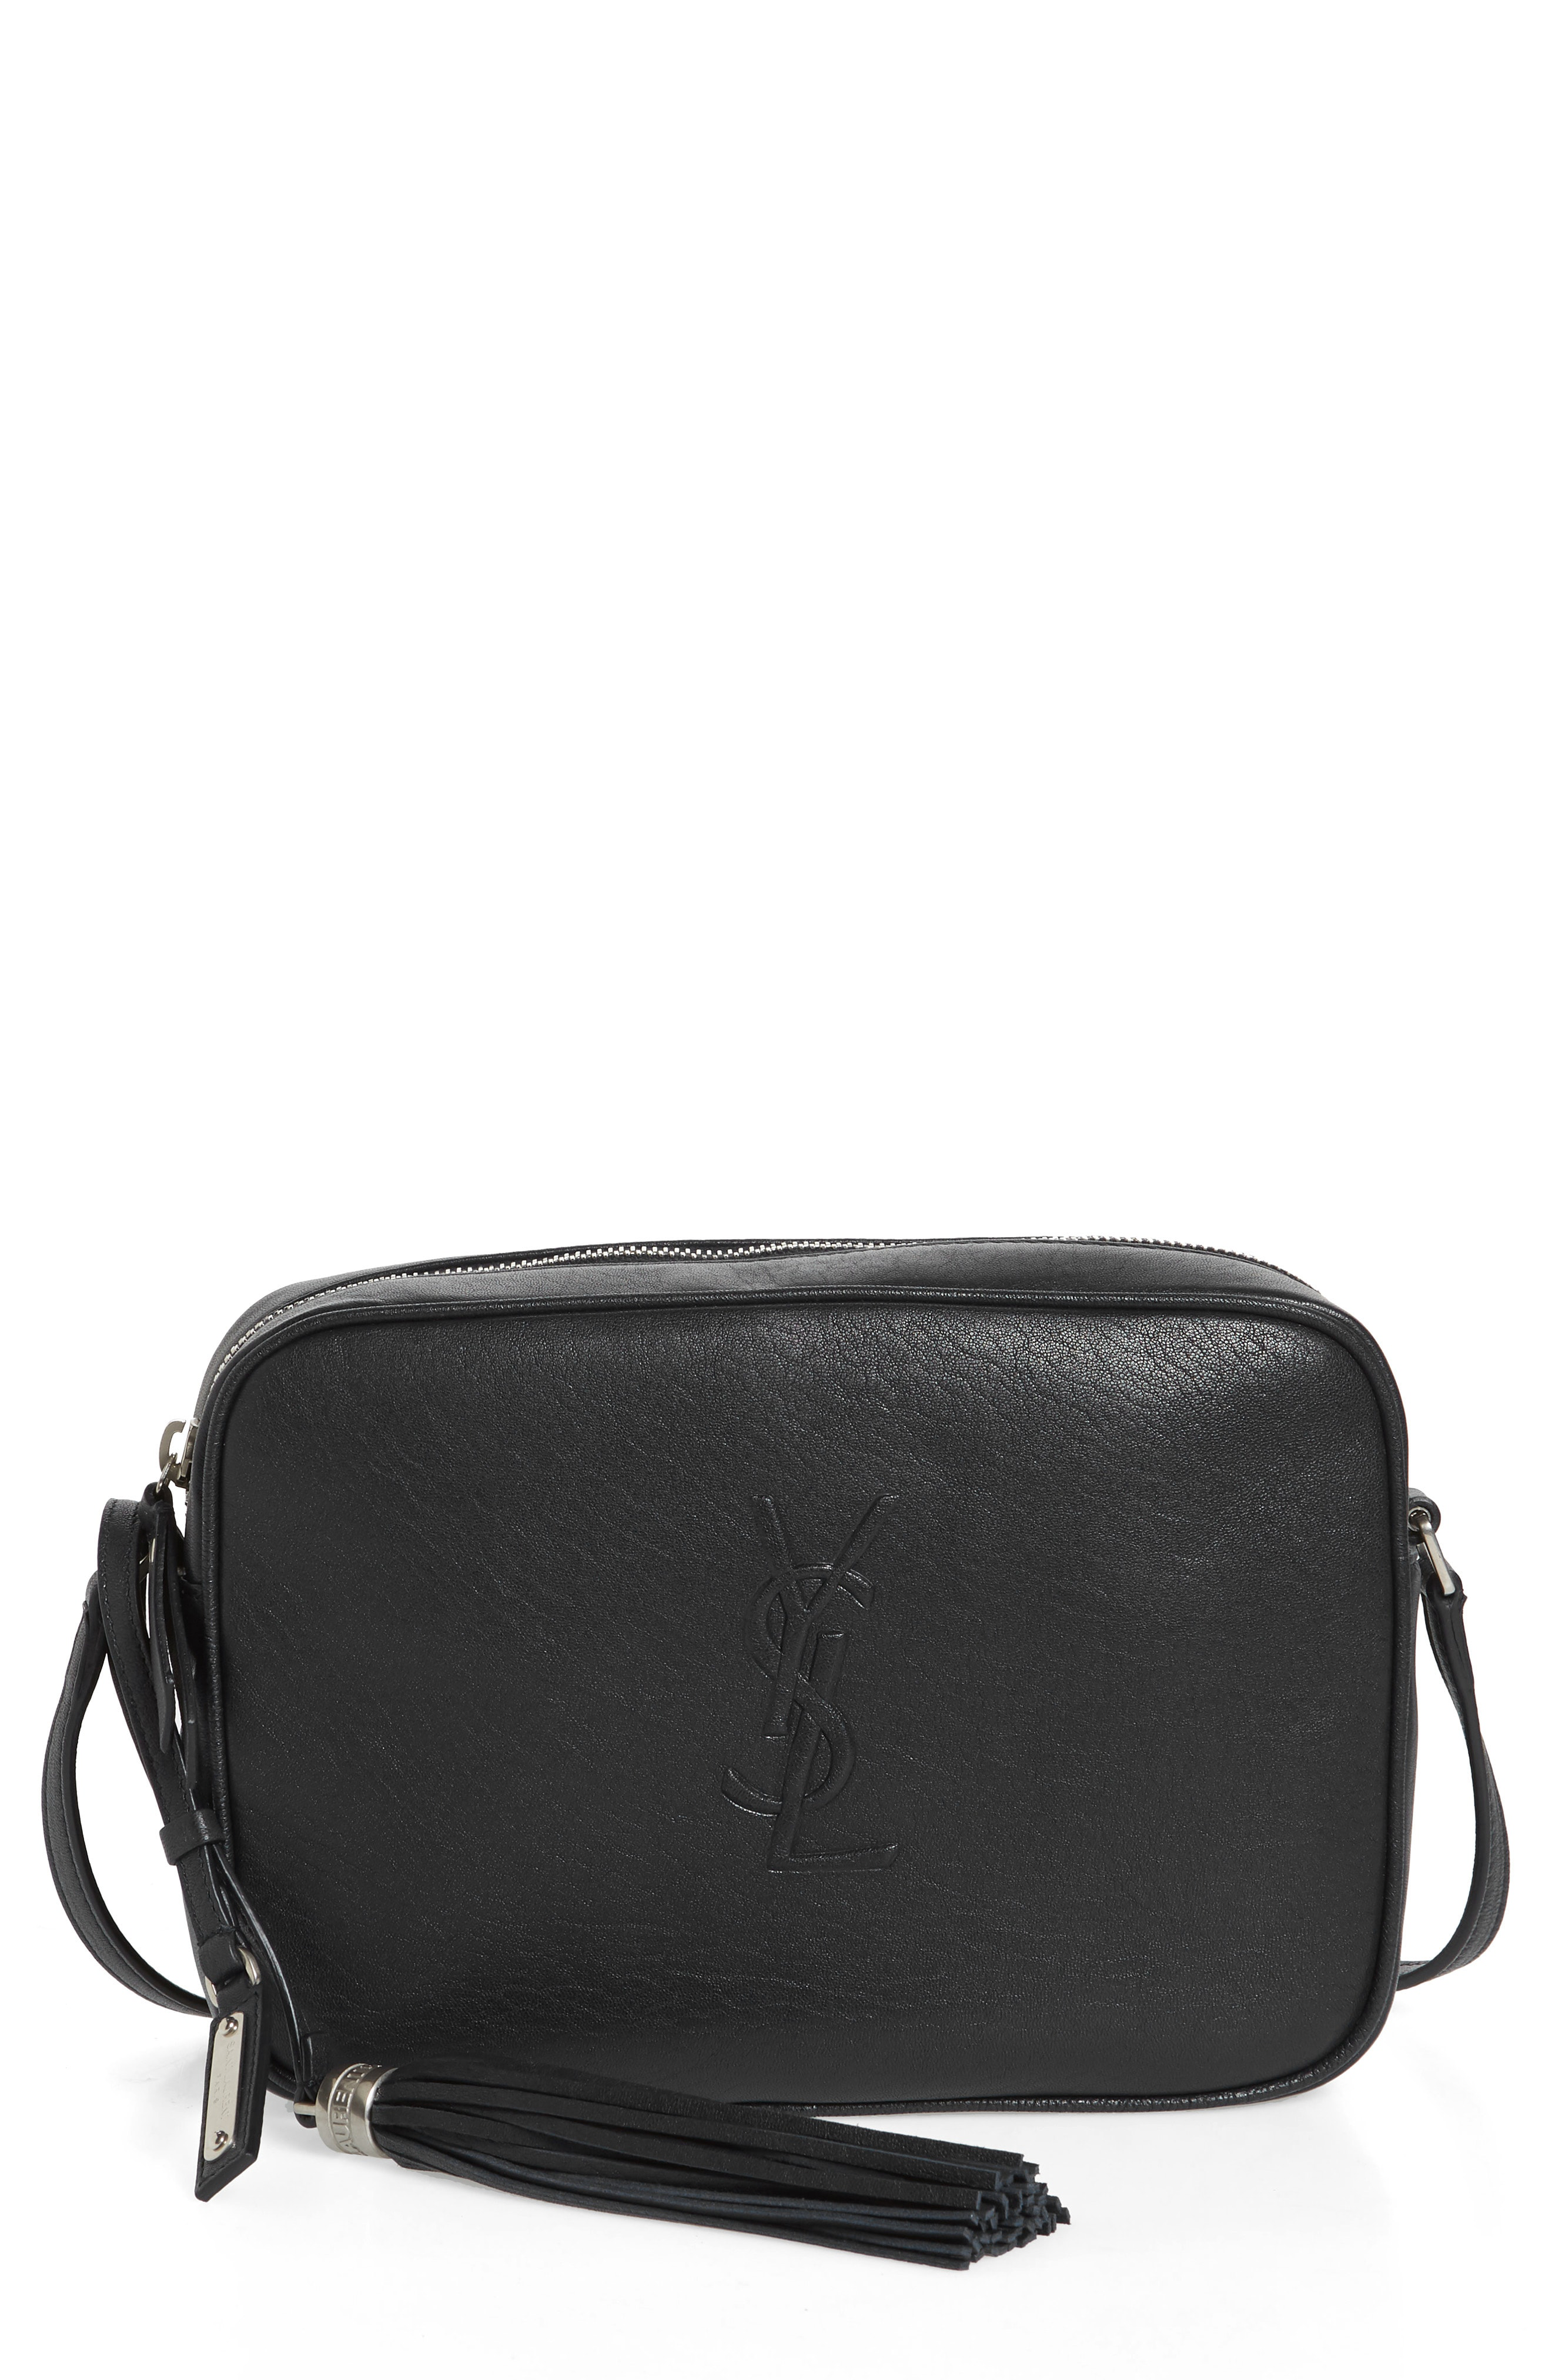 b34c8777b3 Style Name  Saint Laurent Small Mono Leather Camera Bag. Style Number   5631613. Available in stores.